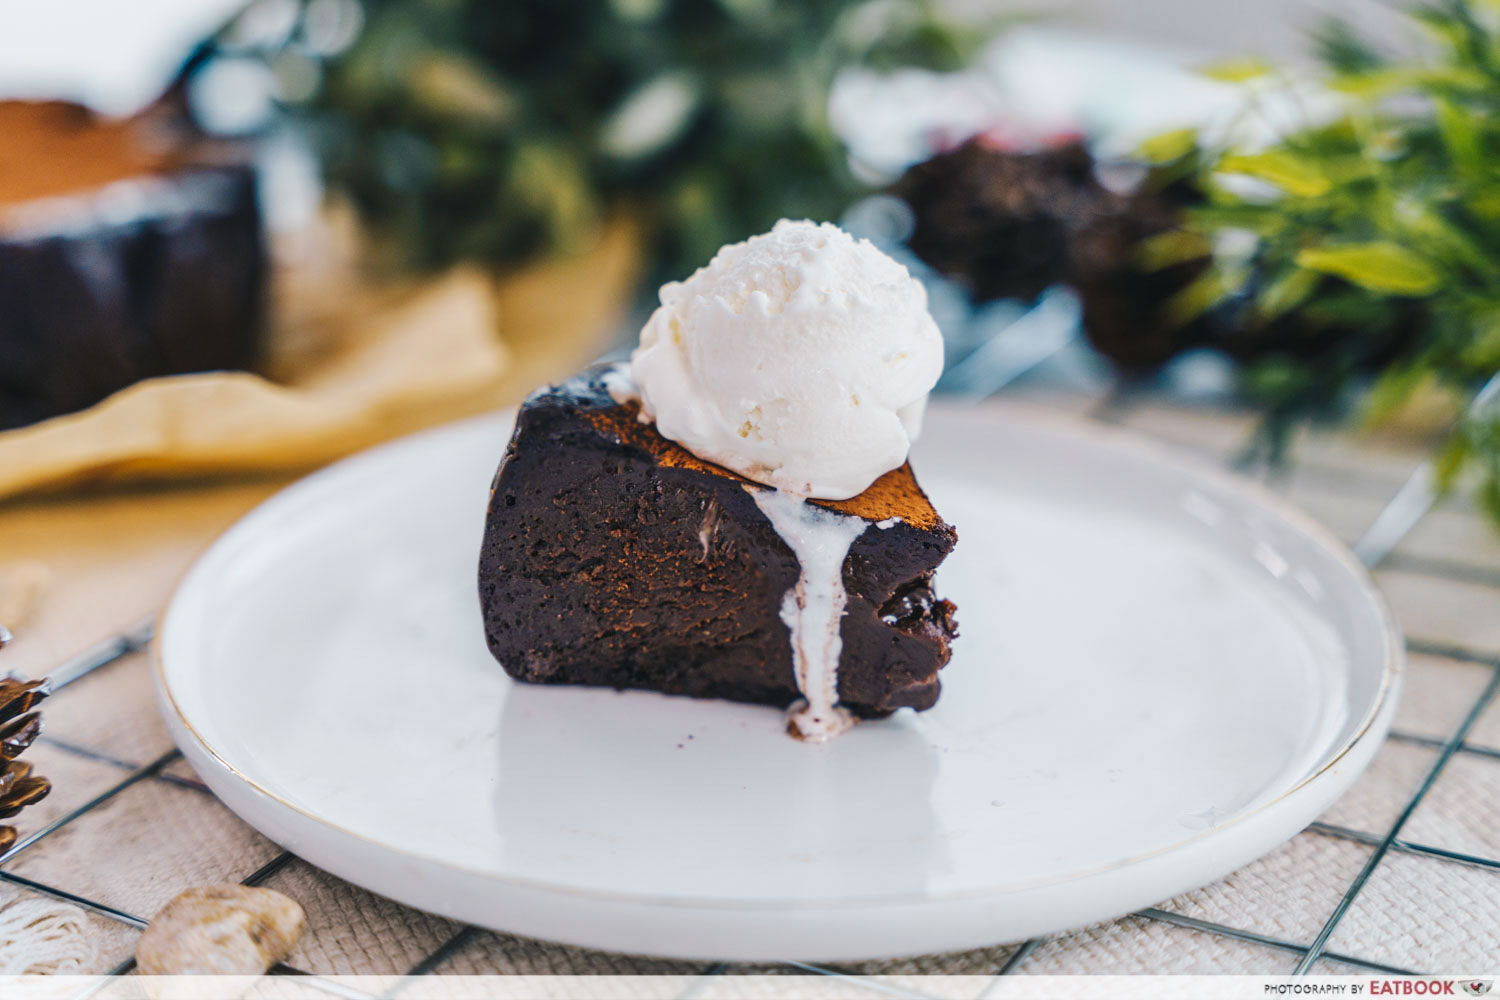 baked chocolate melt - with ice cream